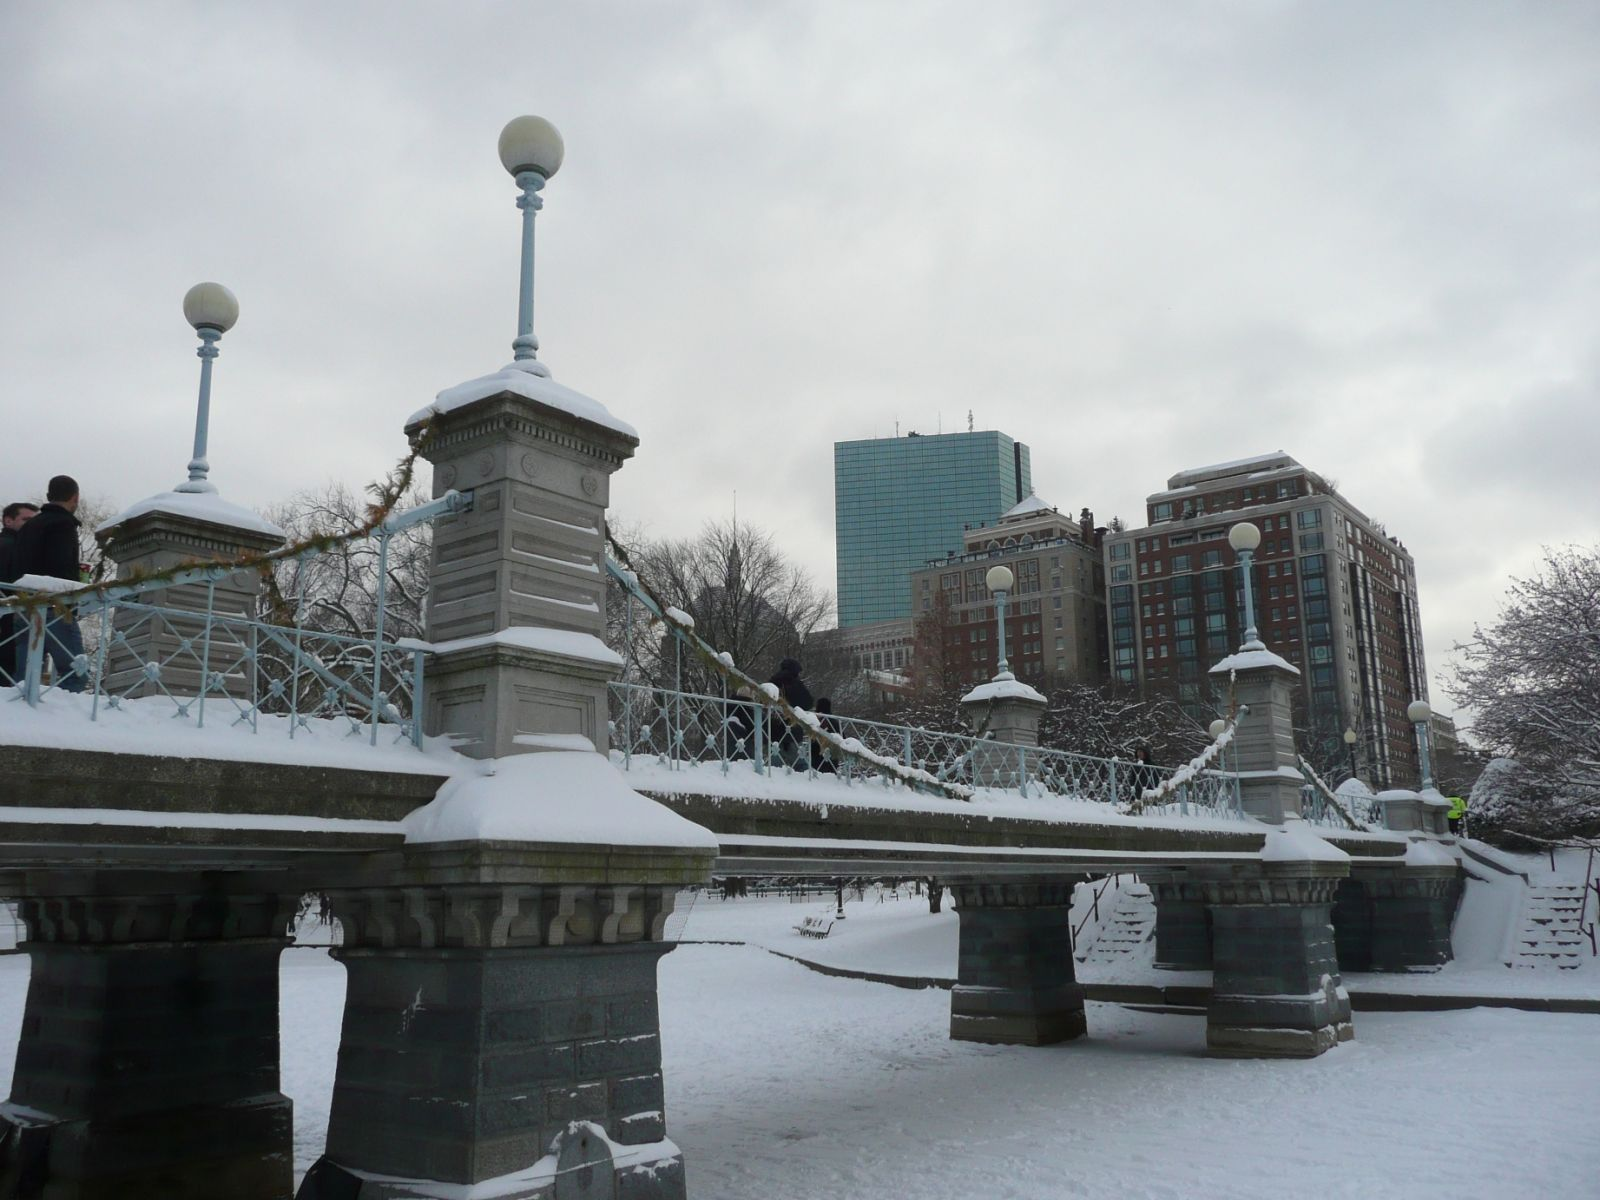 Bridgehuntercom Boston Public Garden Bridge